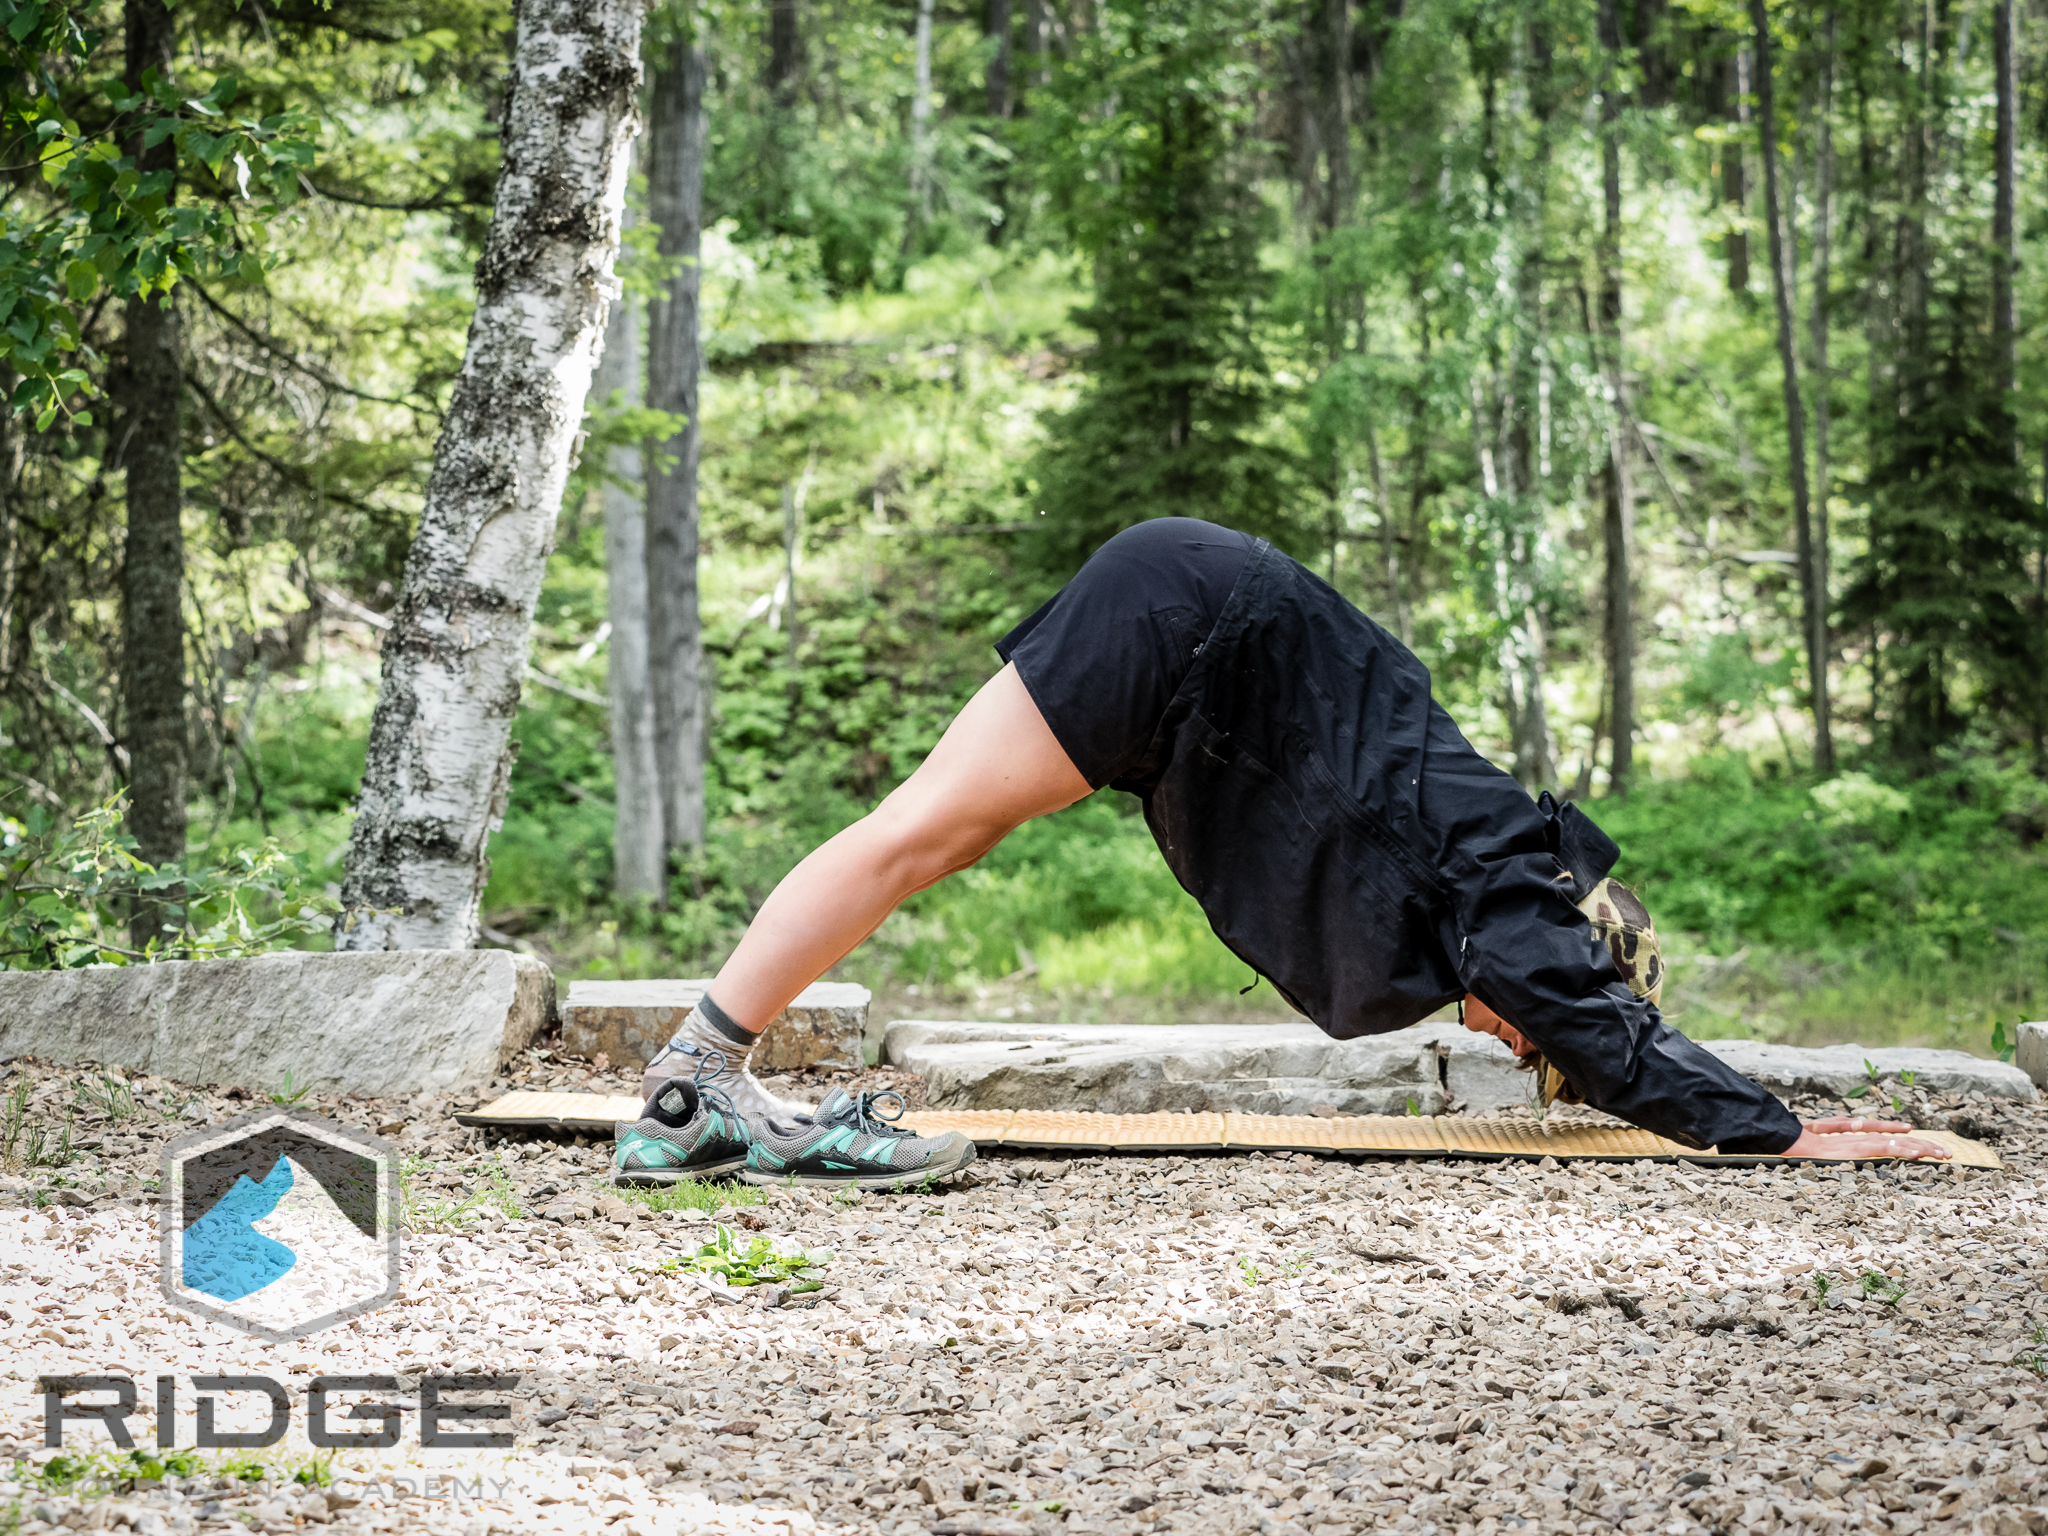 RIDGE Lead Yoga Coach, Cat Jenks, making time for downward Dog in camp.